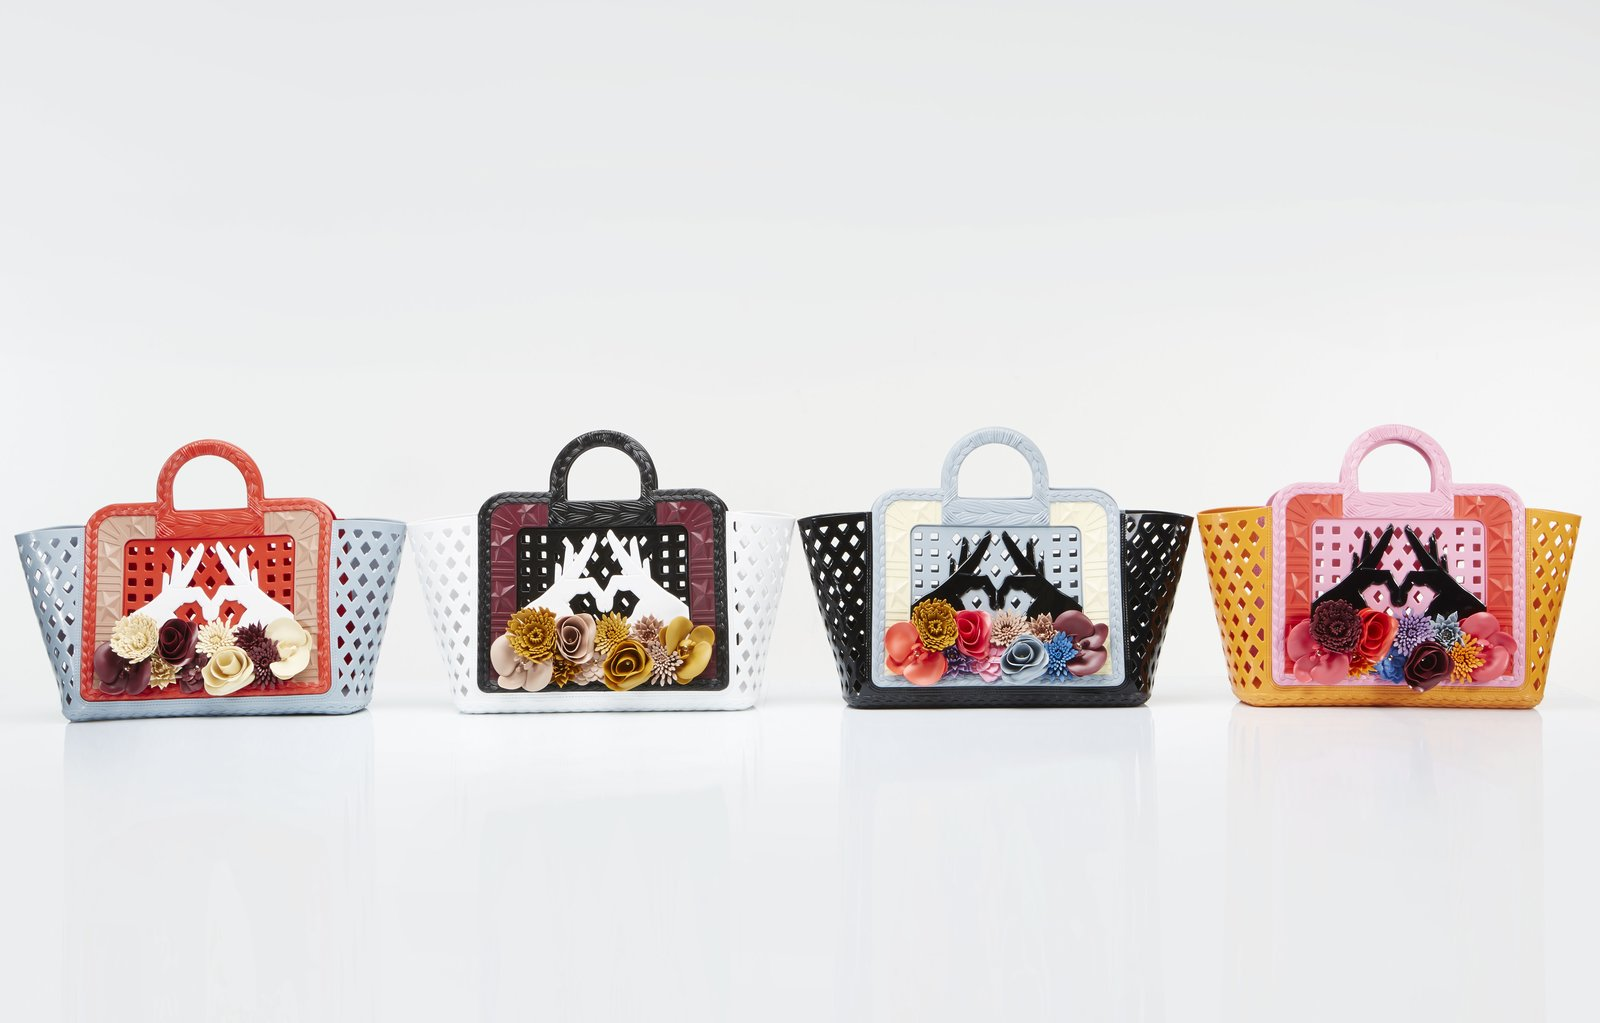 Continuing its ongoing collaborations with fashion designers, Kartell has just teamed with Paula Cademartori as part of a project with the Milanese department store La Rinascente. Called Parati, the capsule collection includes a series of colorful sandals and handbags (shown), made with injected plastic and inspired by Rio de Janeiro's Botanical Garden.